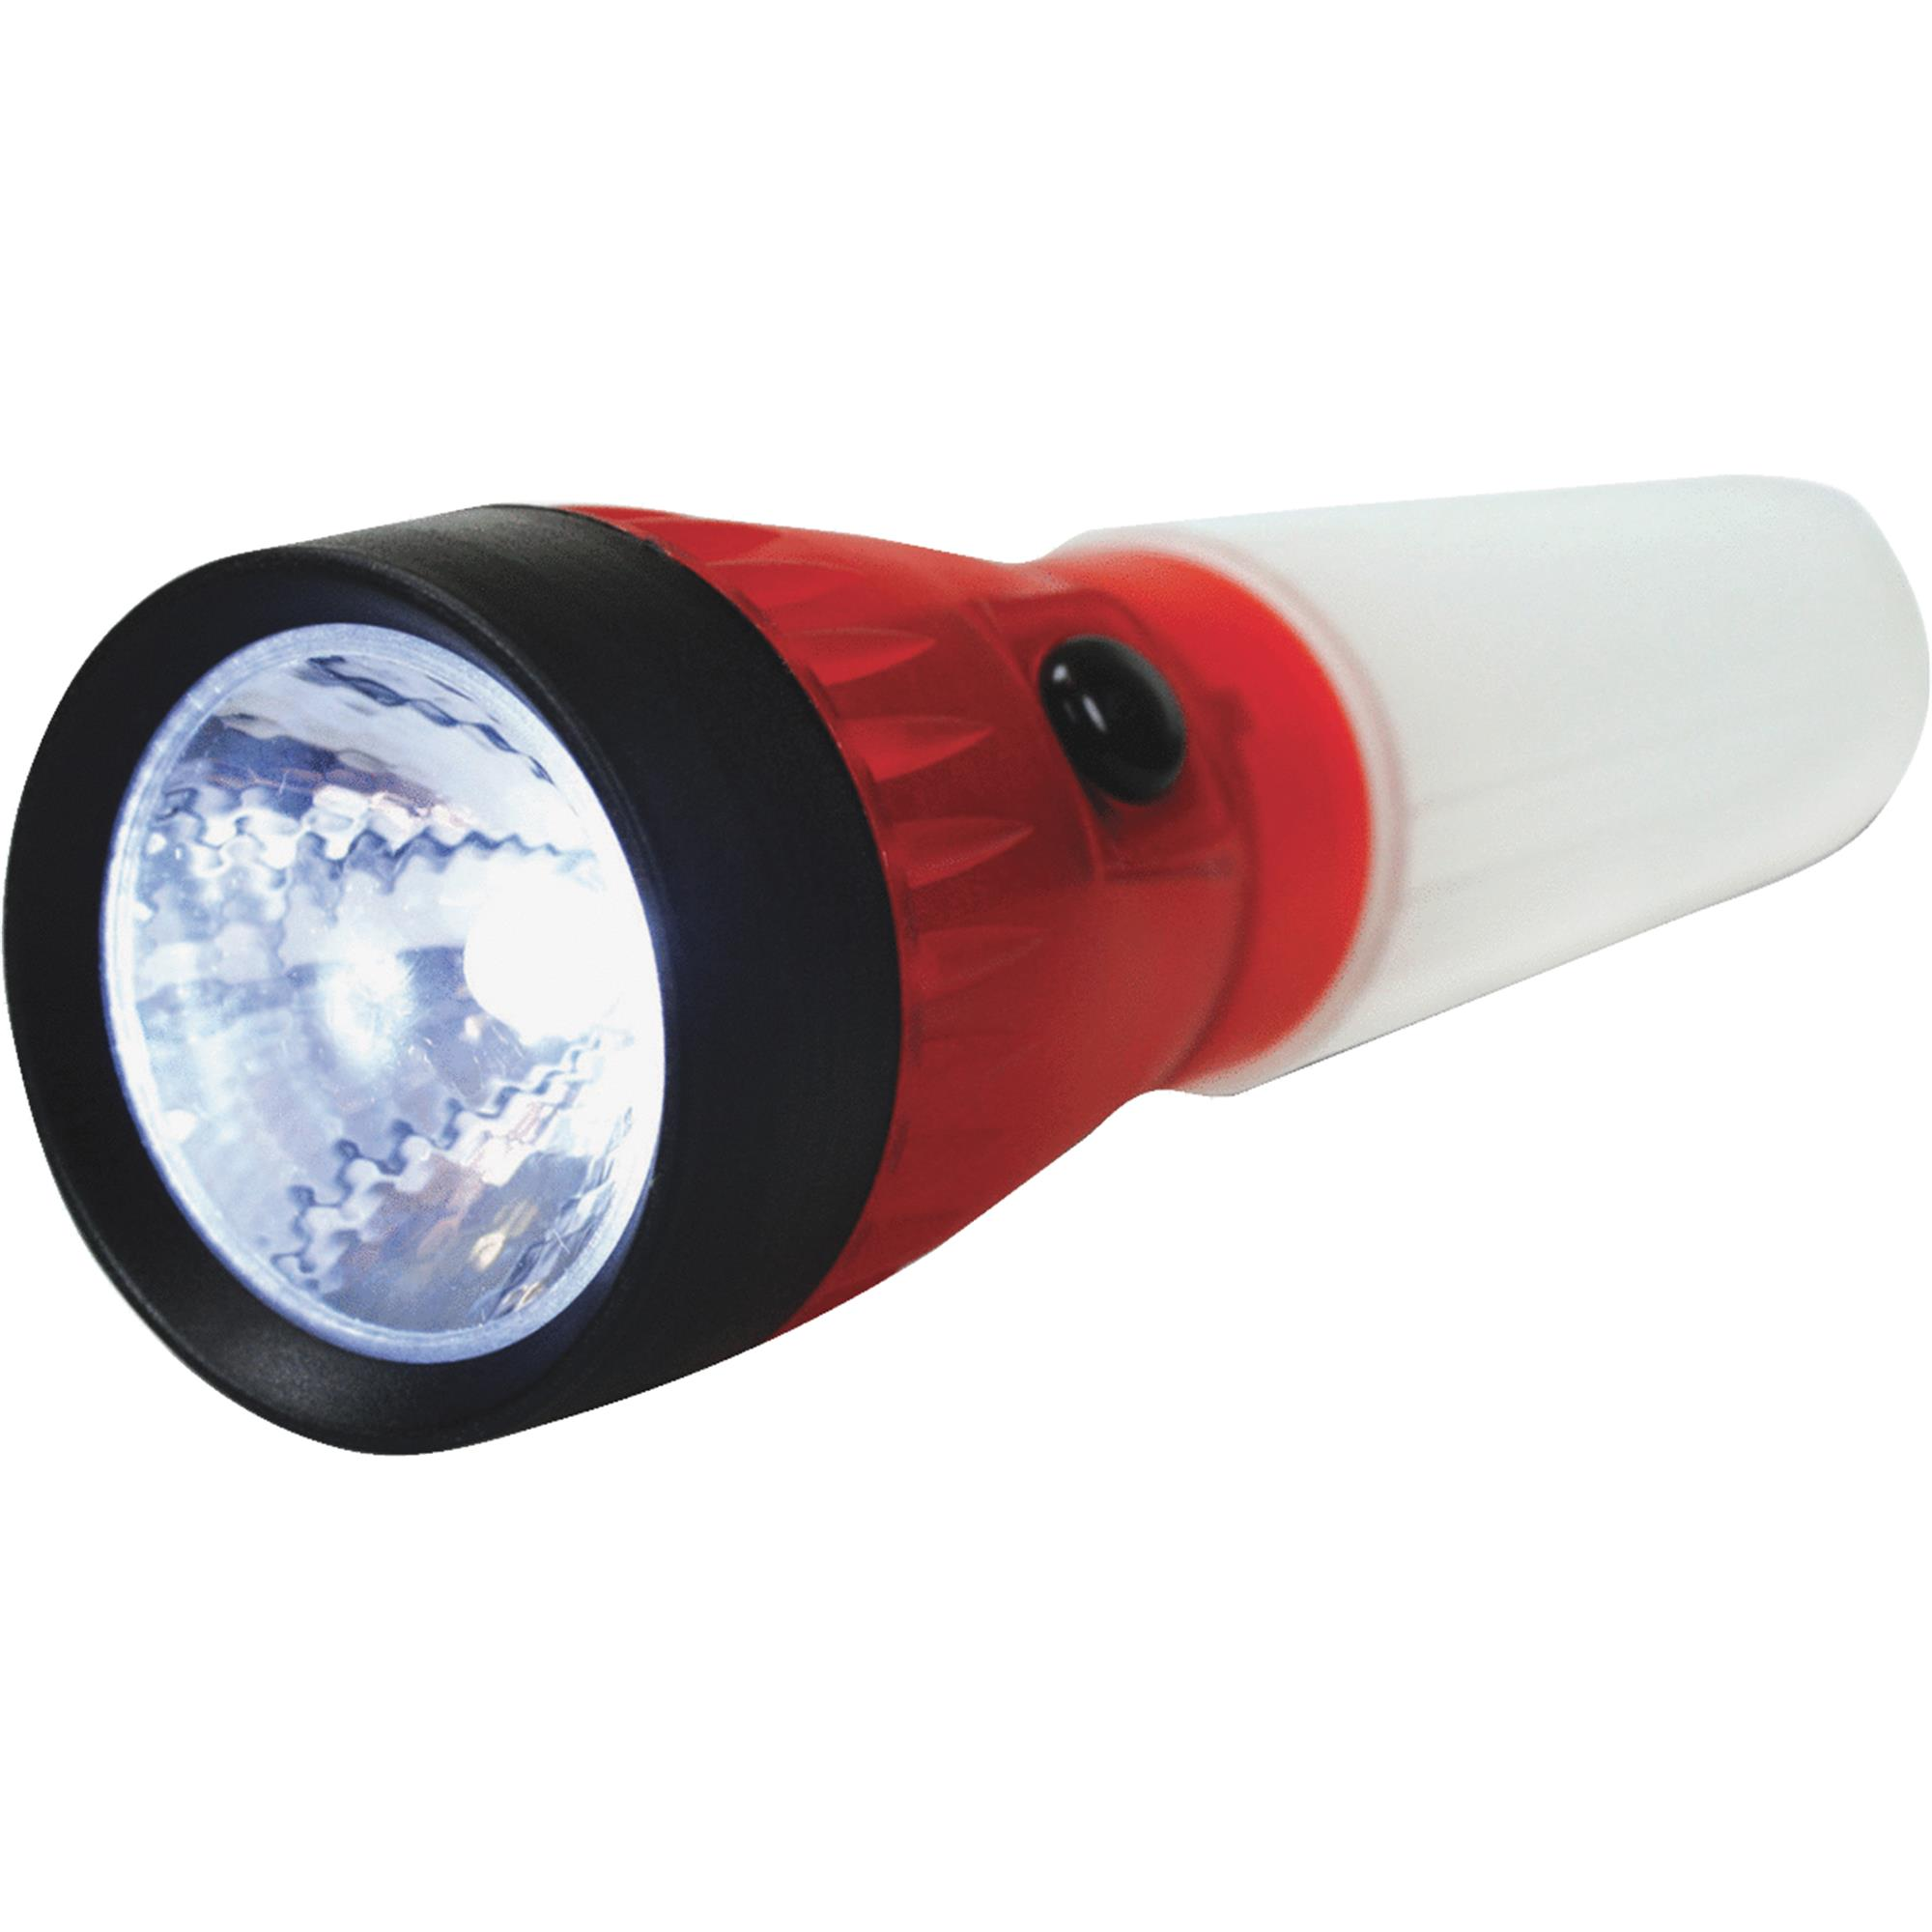 Life Gear 4 in 1 LED Glow Flashlight with Storage